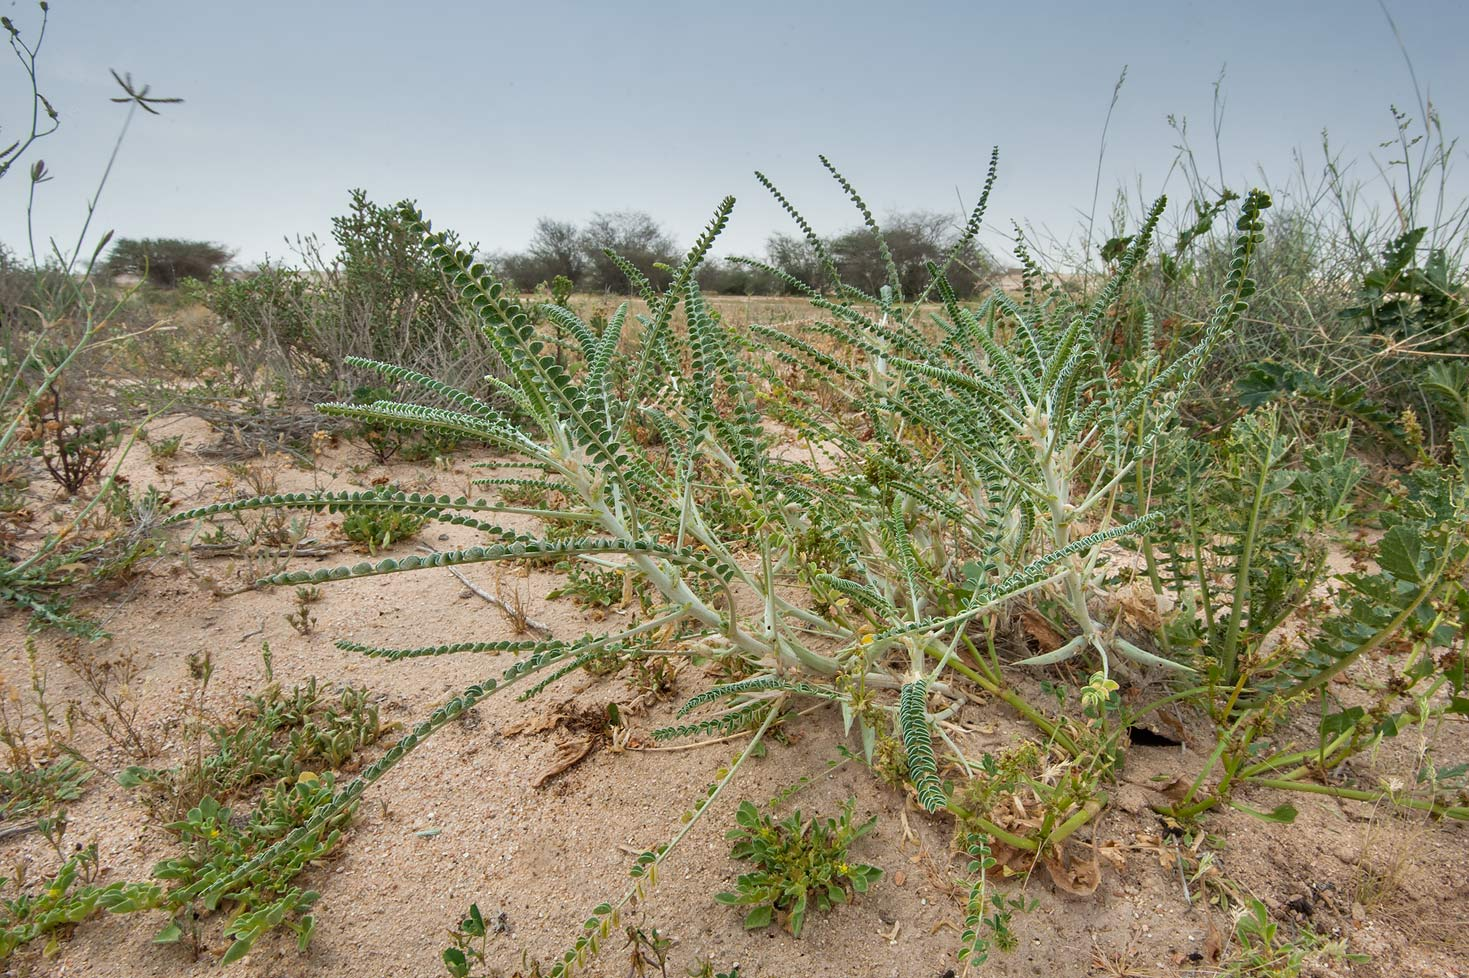 Astragalus sieberi on periphery of Green Circles...Irkaya) Farms. South-western Qatar